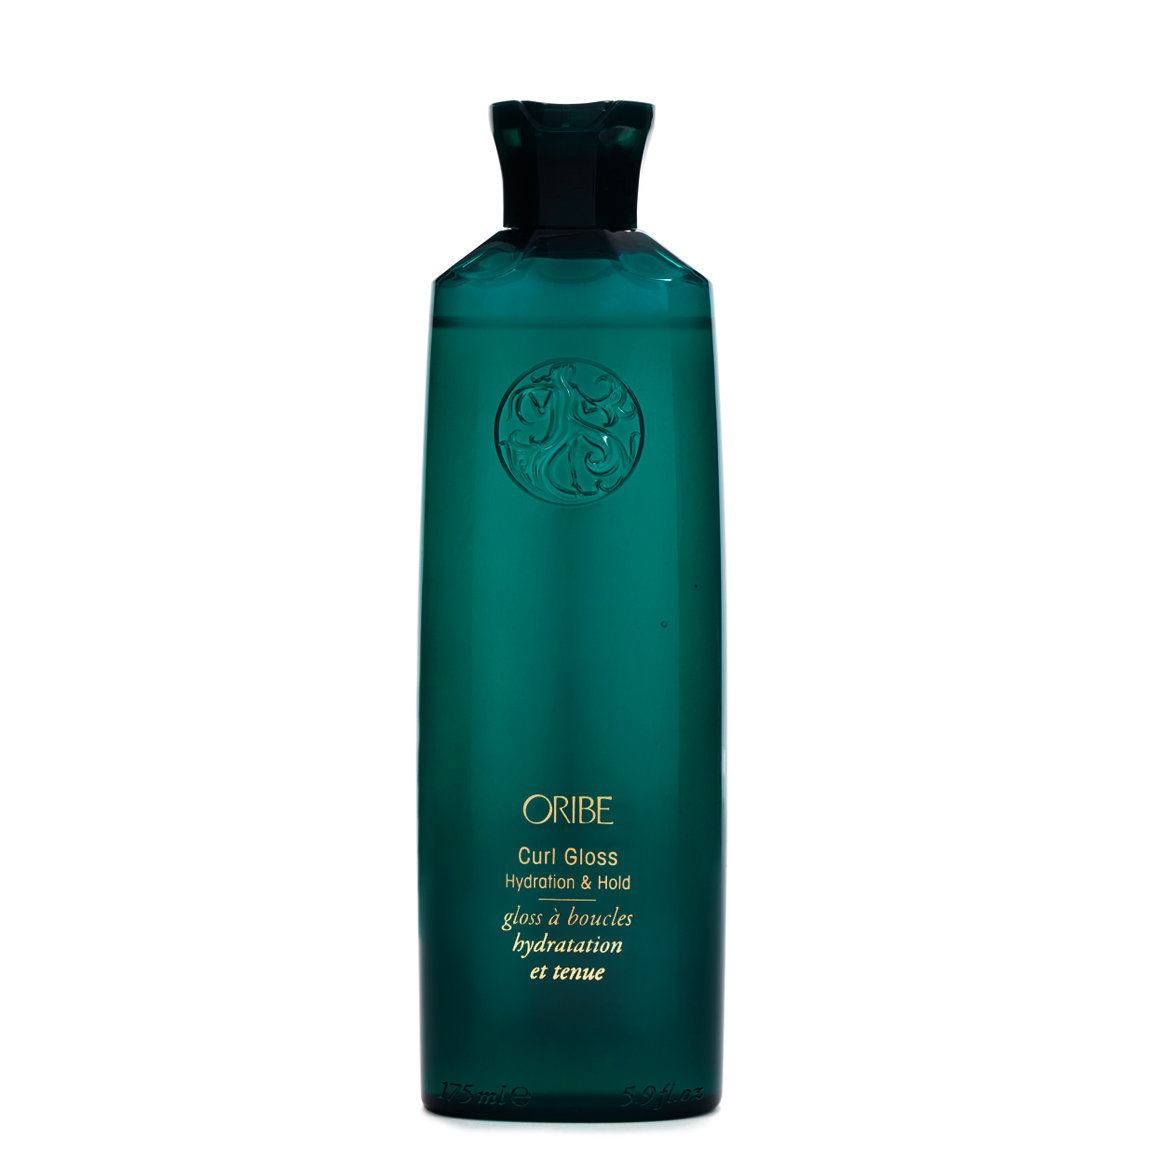 Oribe Curl Gloss Hydration & Hold product swatch.